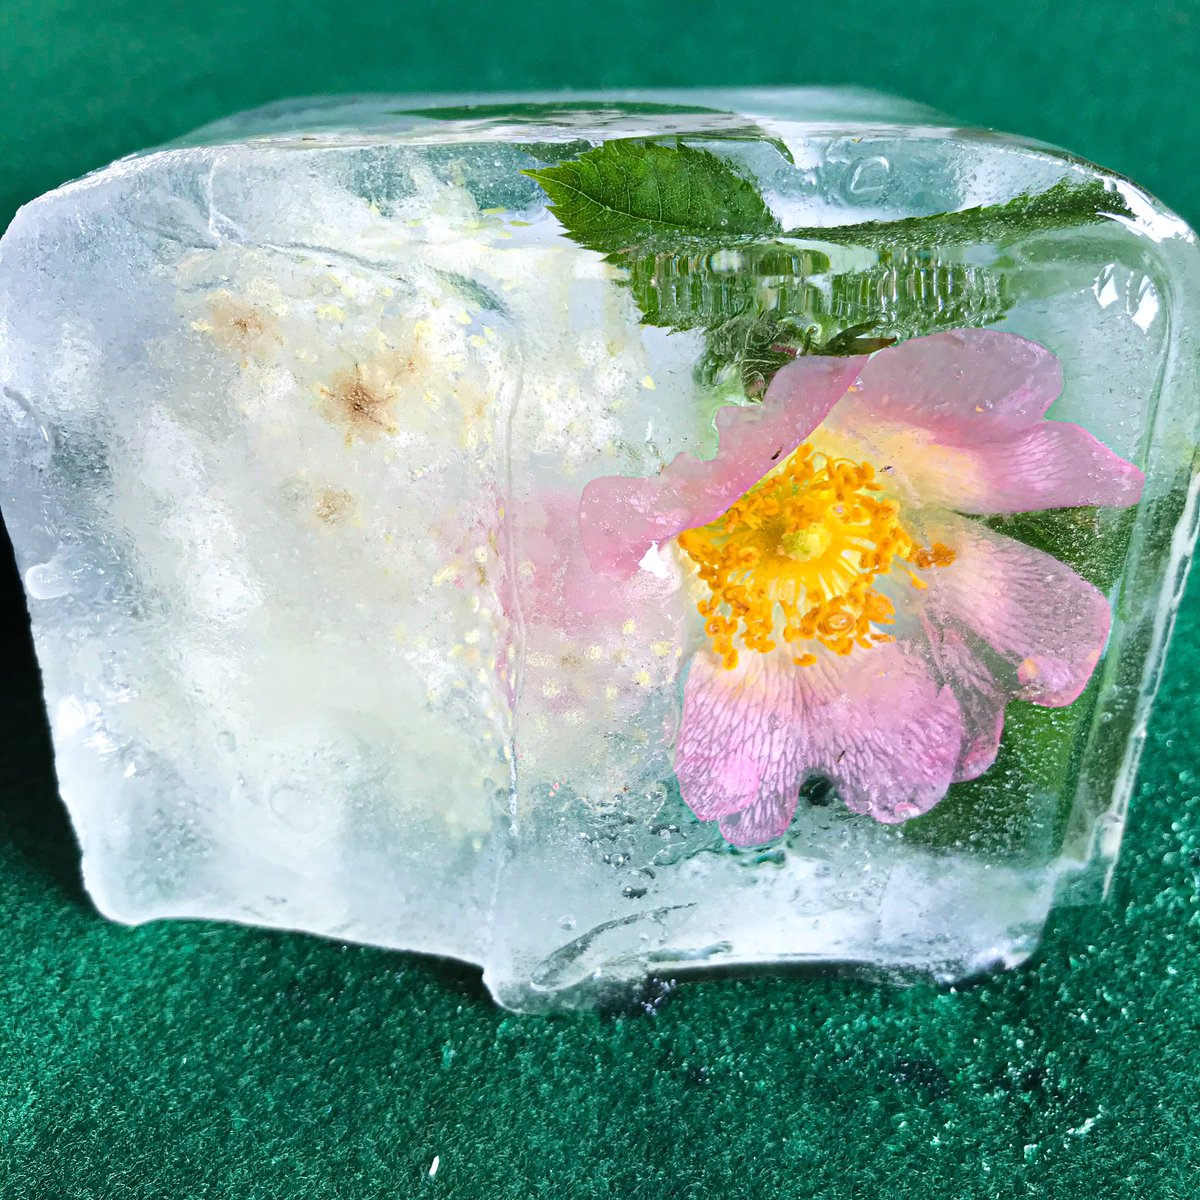 Don't throw out flowers! Freeze them for some #sensoryplay  #play #eyfs #resolvetoplay #nature https://t.co/qEMRAFldlo